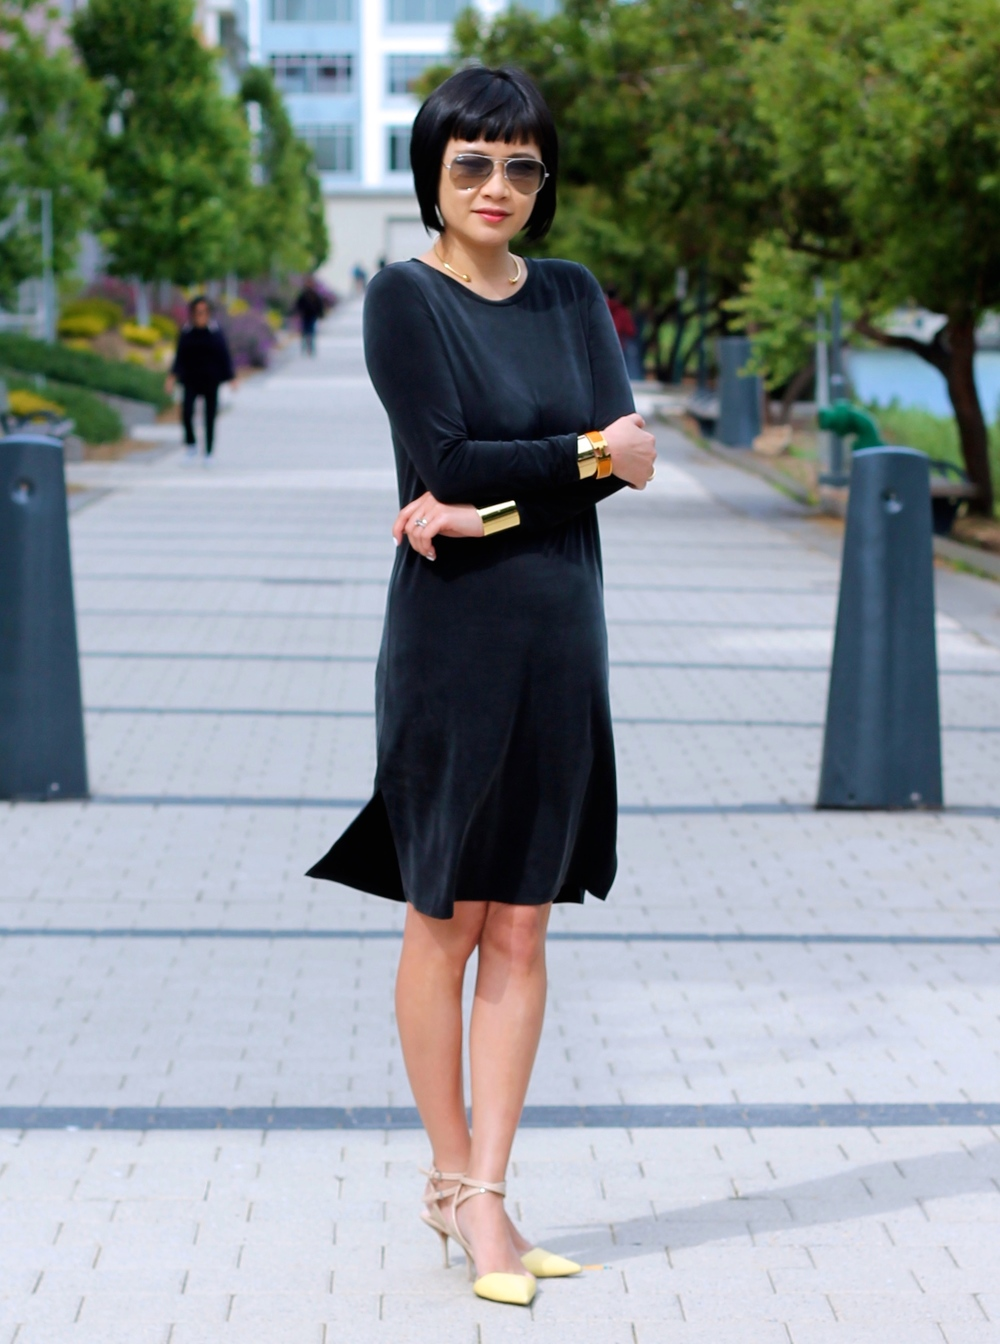 Aritzia dress, Zara shoes, Ray-Ban sunglasses